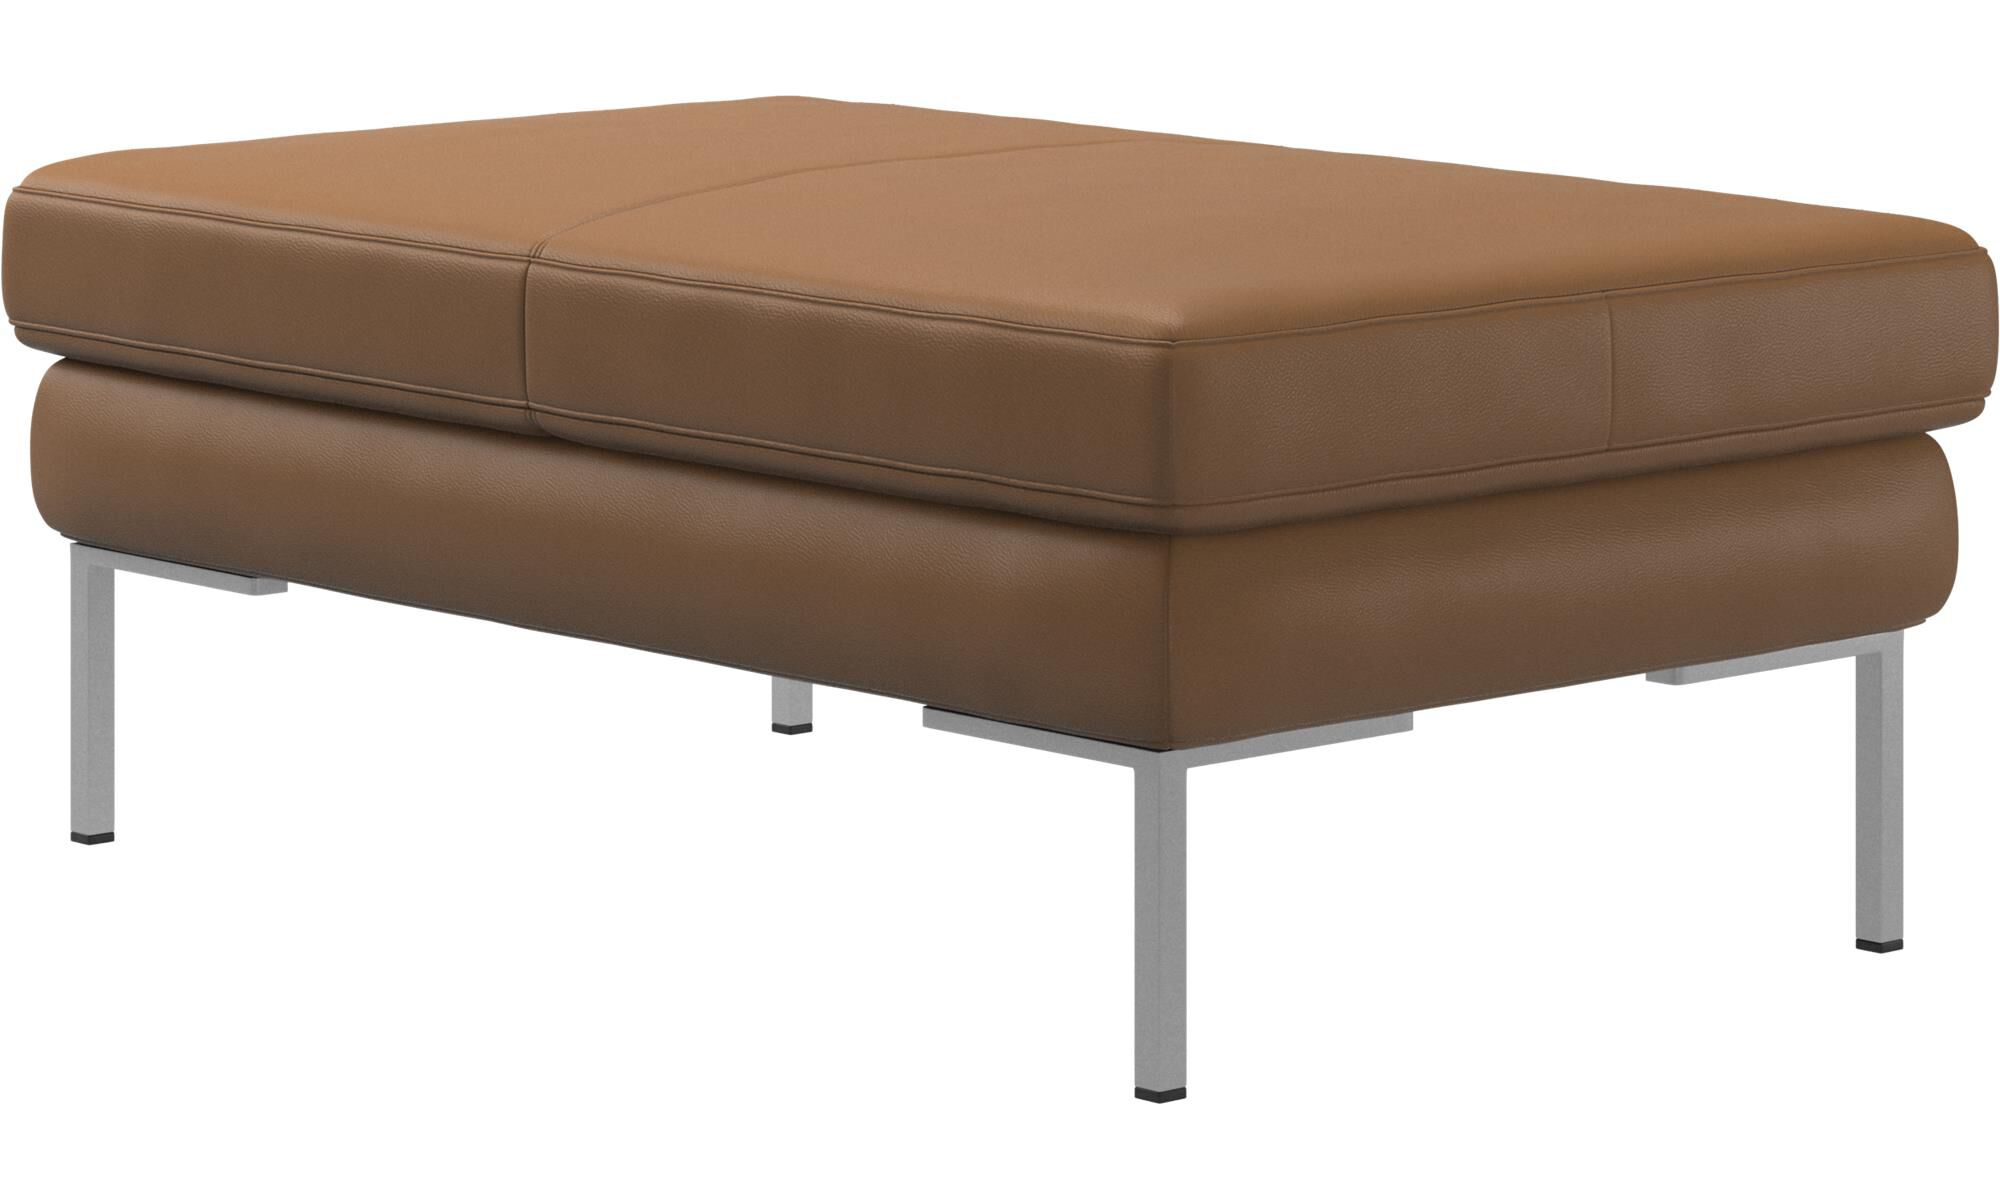 ... New Designs   Istra 2 Ottoman   Brown   Leather ...